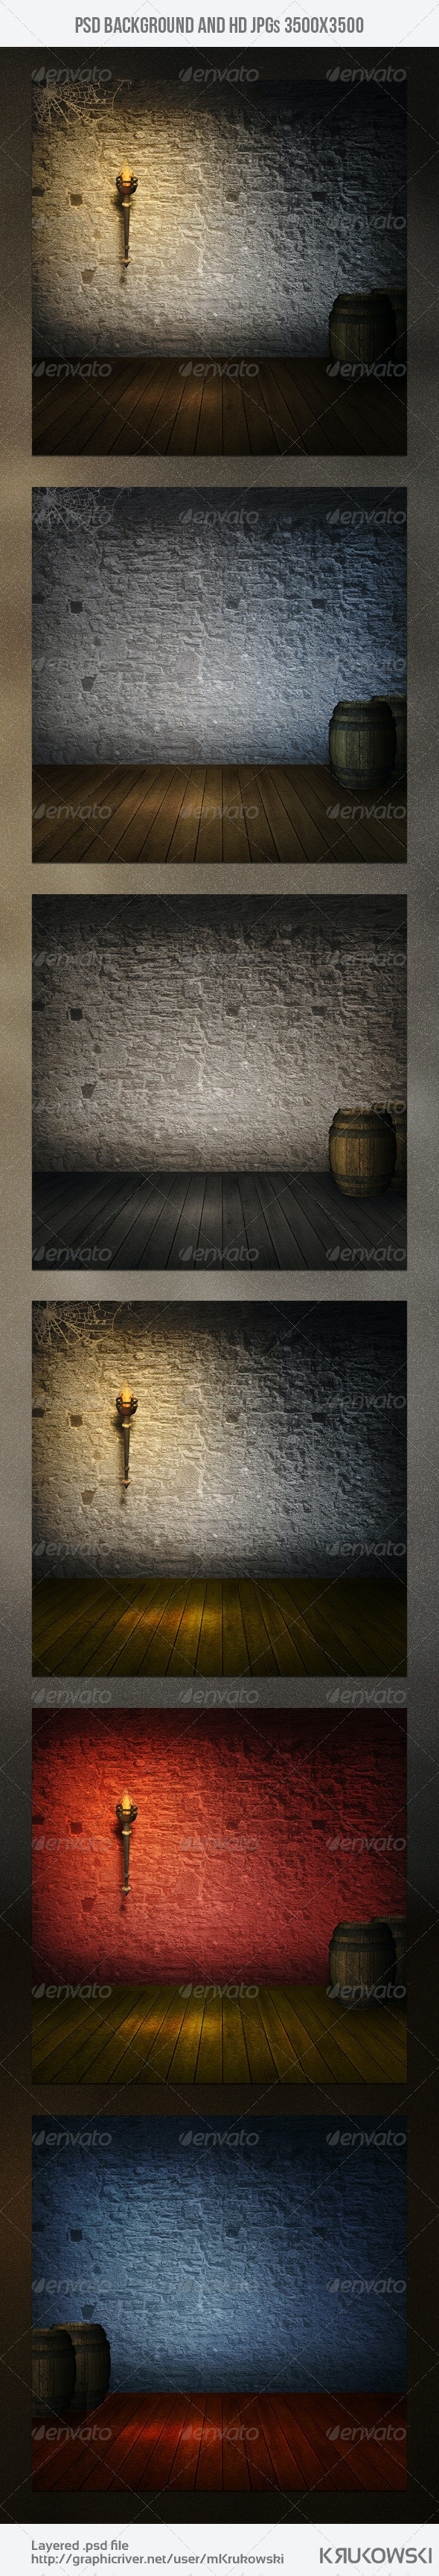 Old Stone Cellar Background - Miscellaneous Backgrounds